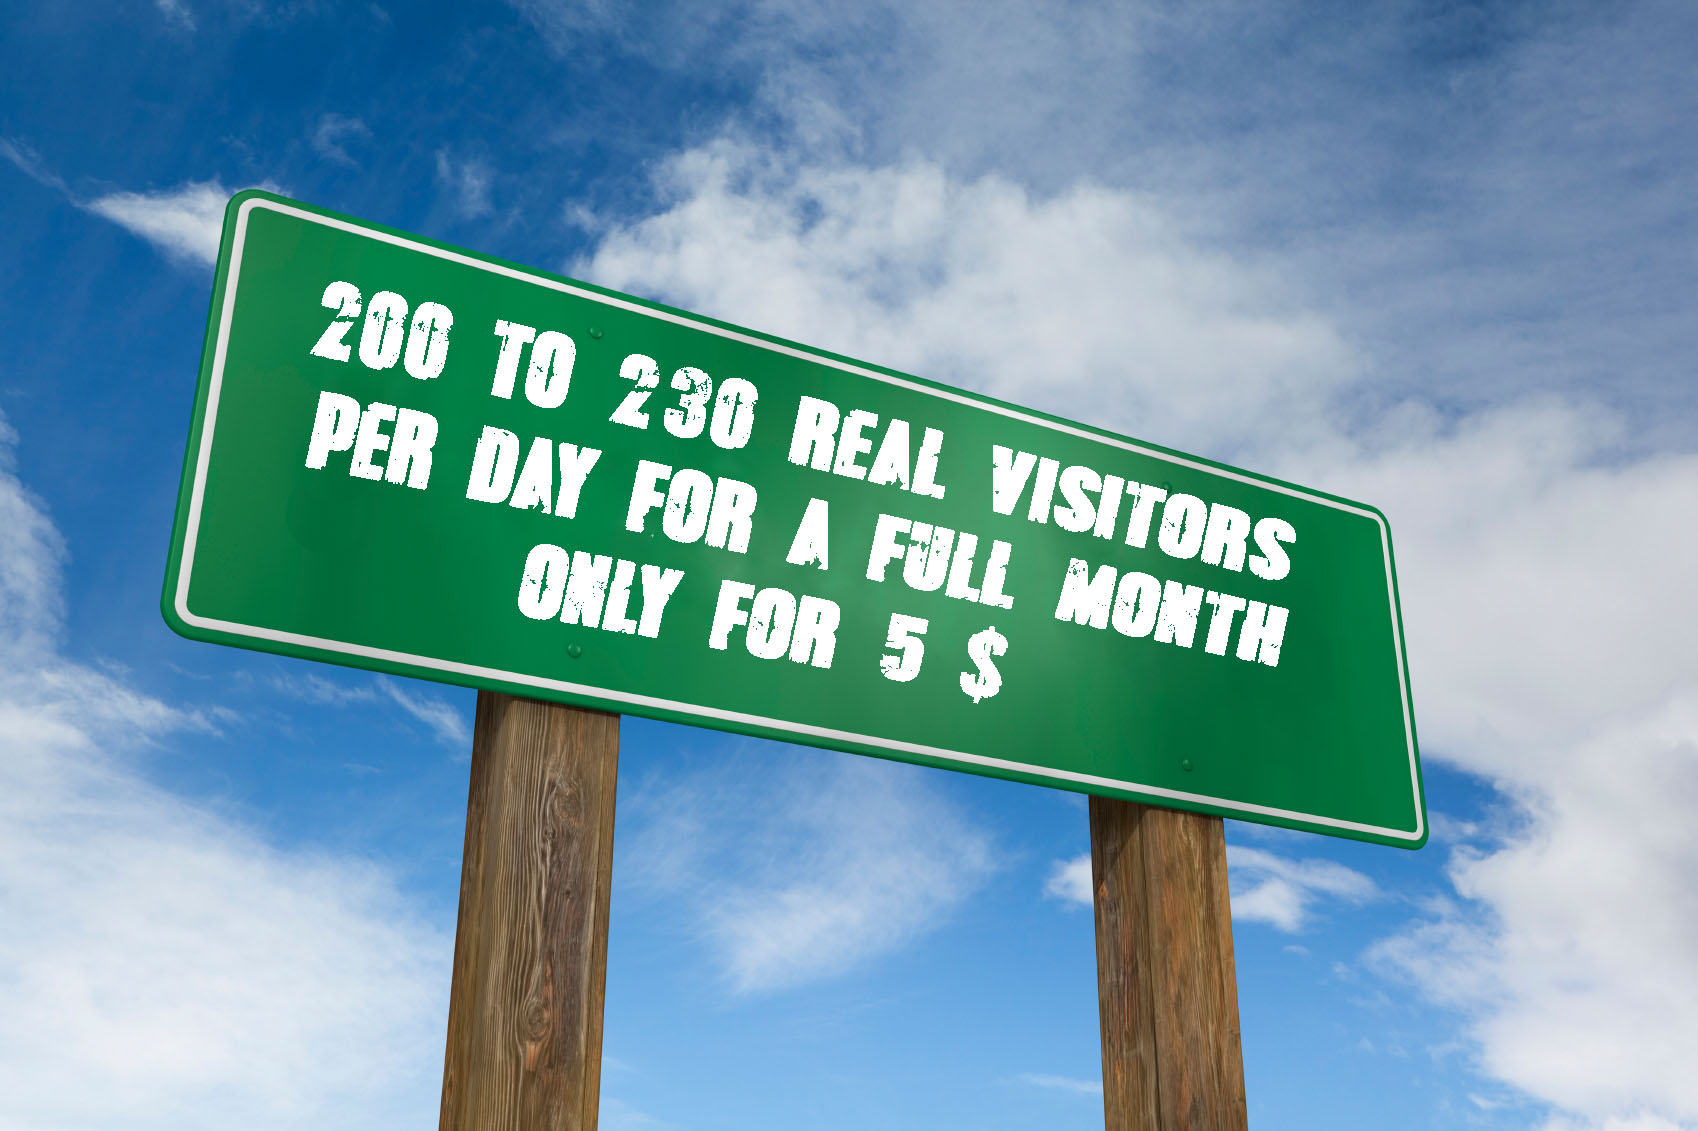 send 200 to 230 real visitors for a full month